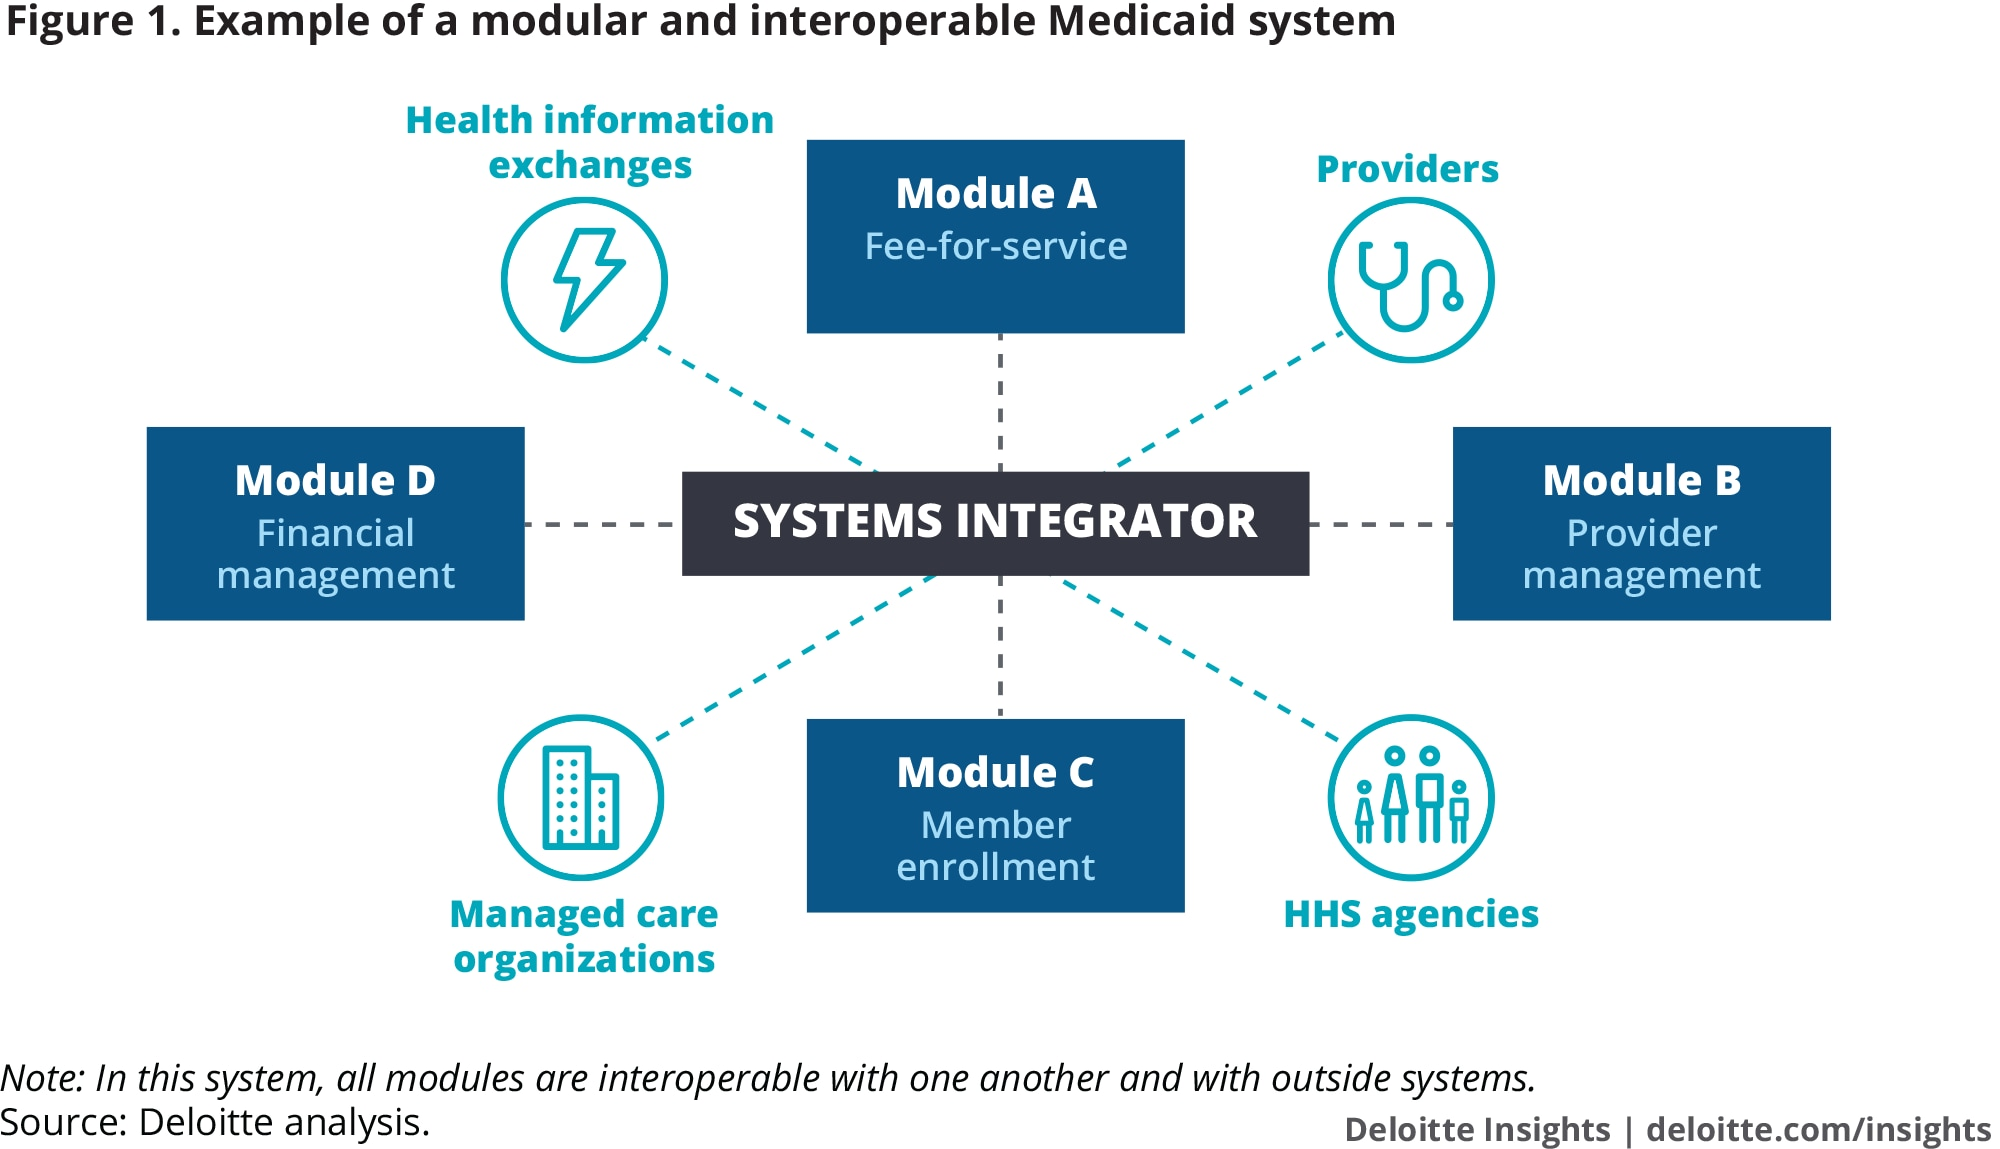 Example of a modular and interoperable Medicaid system